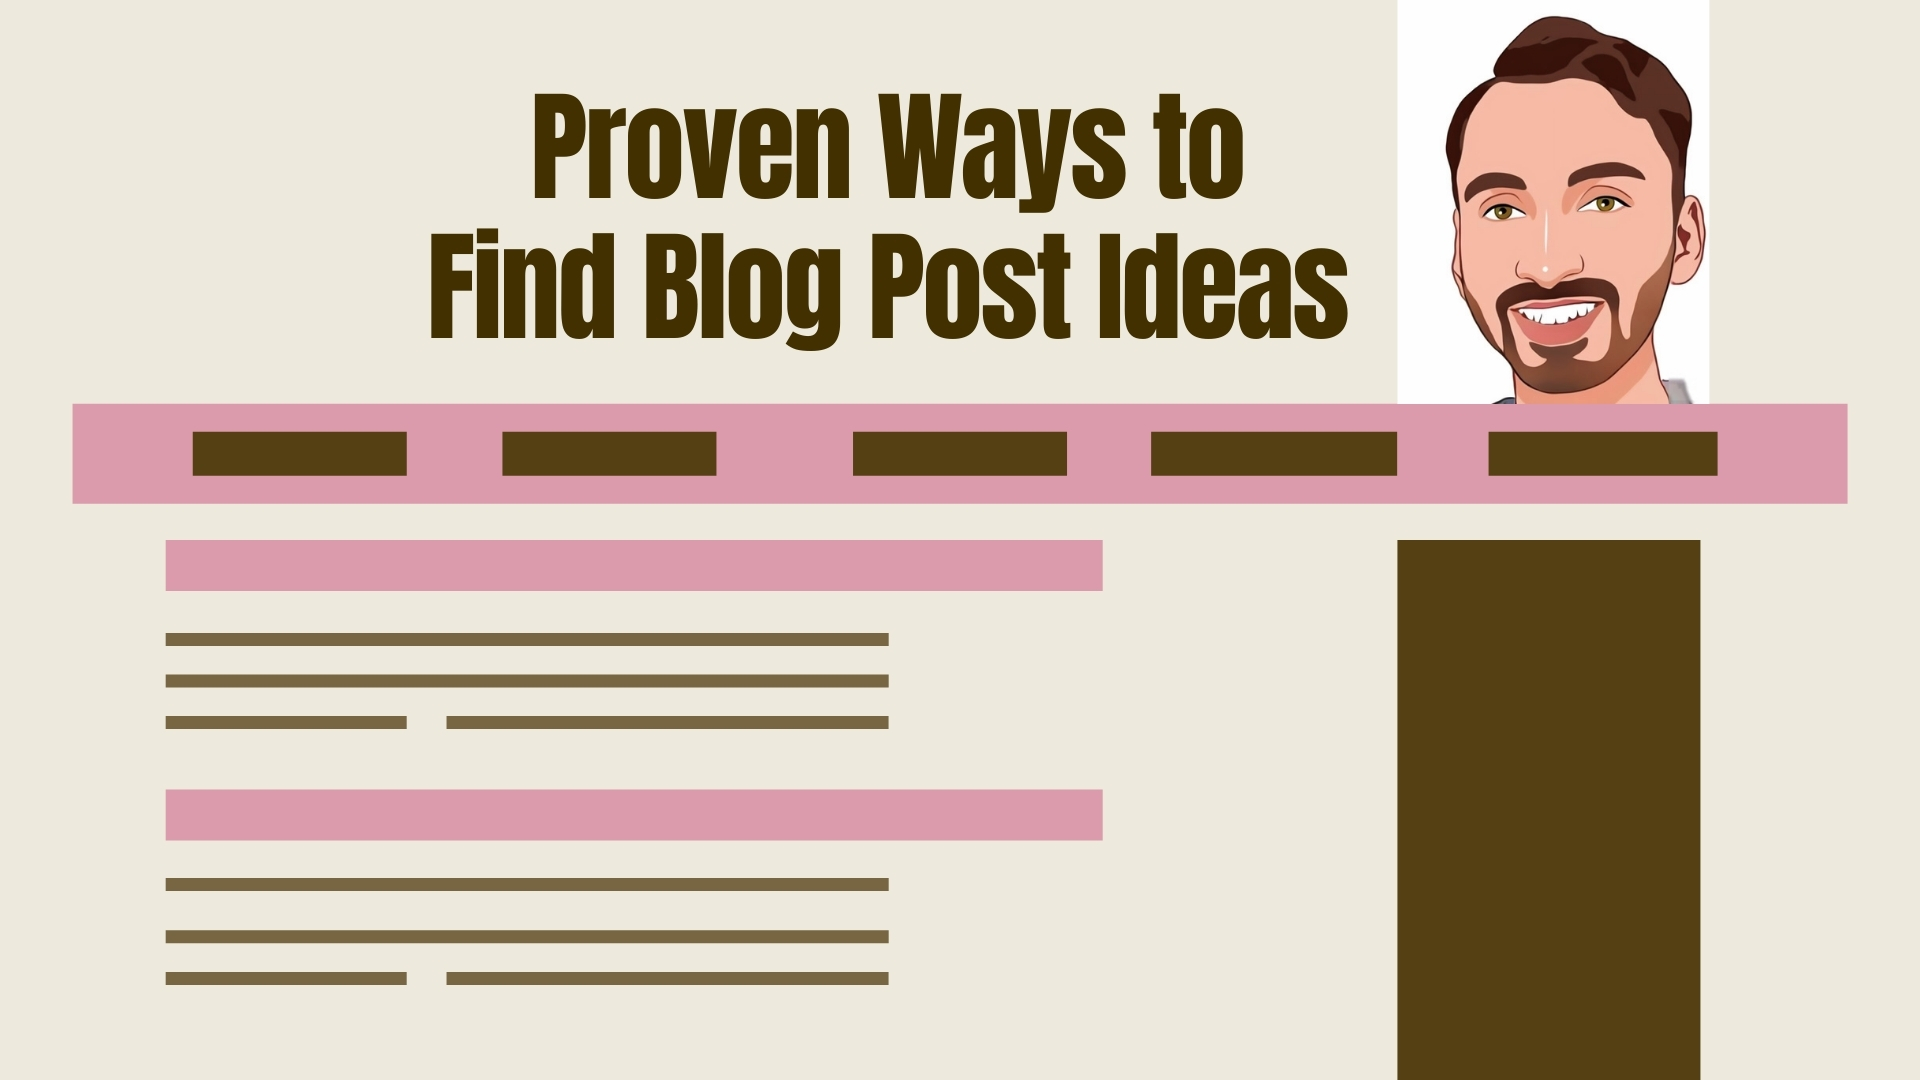 Proven Ways to Find Blog Post Ideas and Topics to Write About